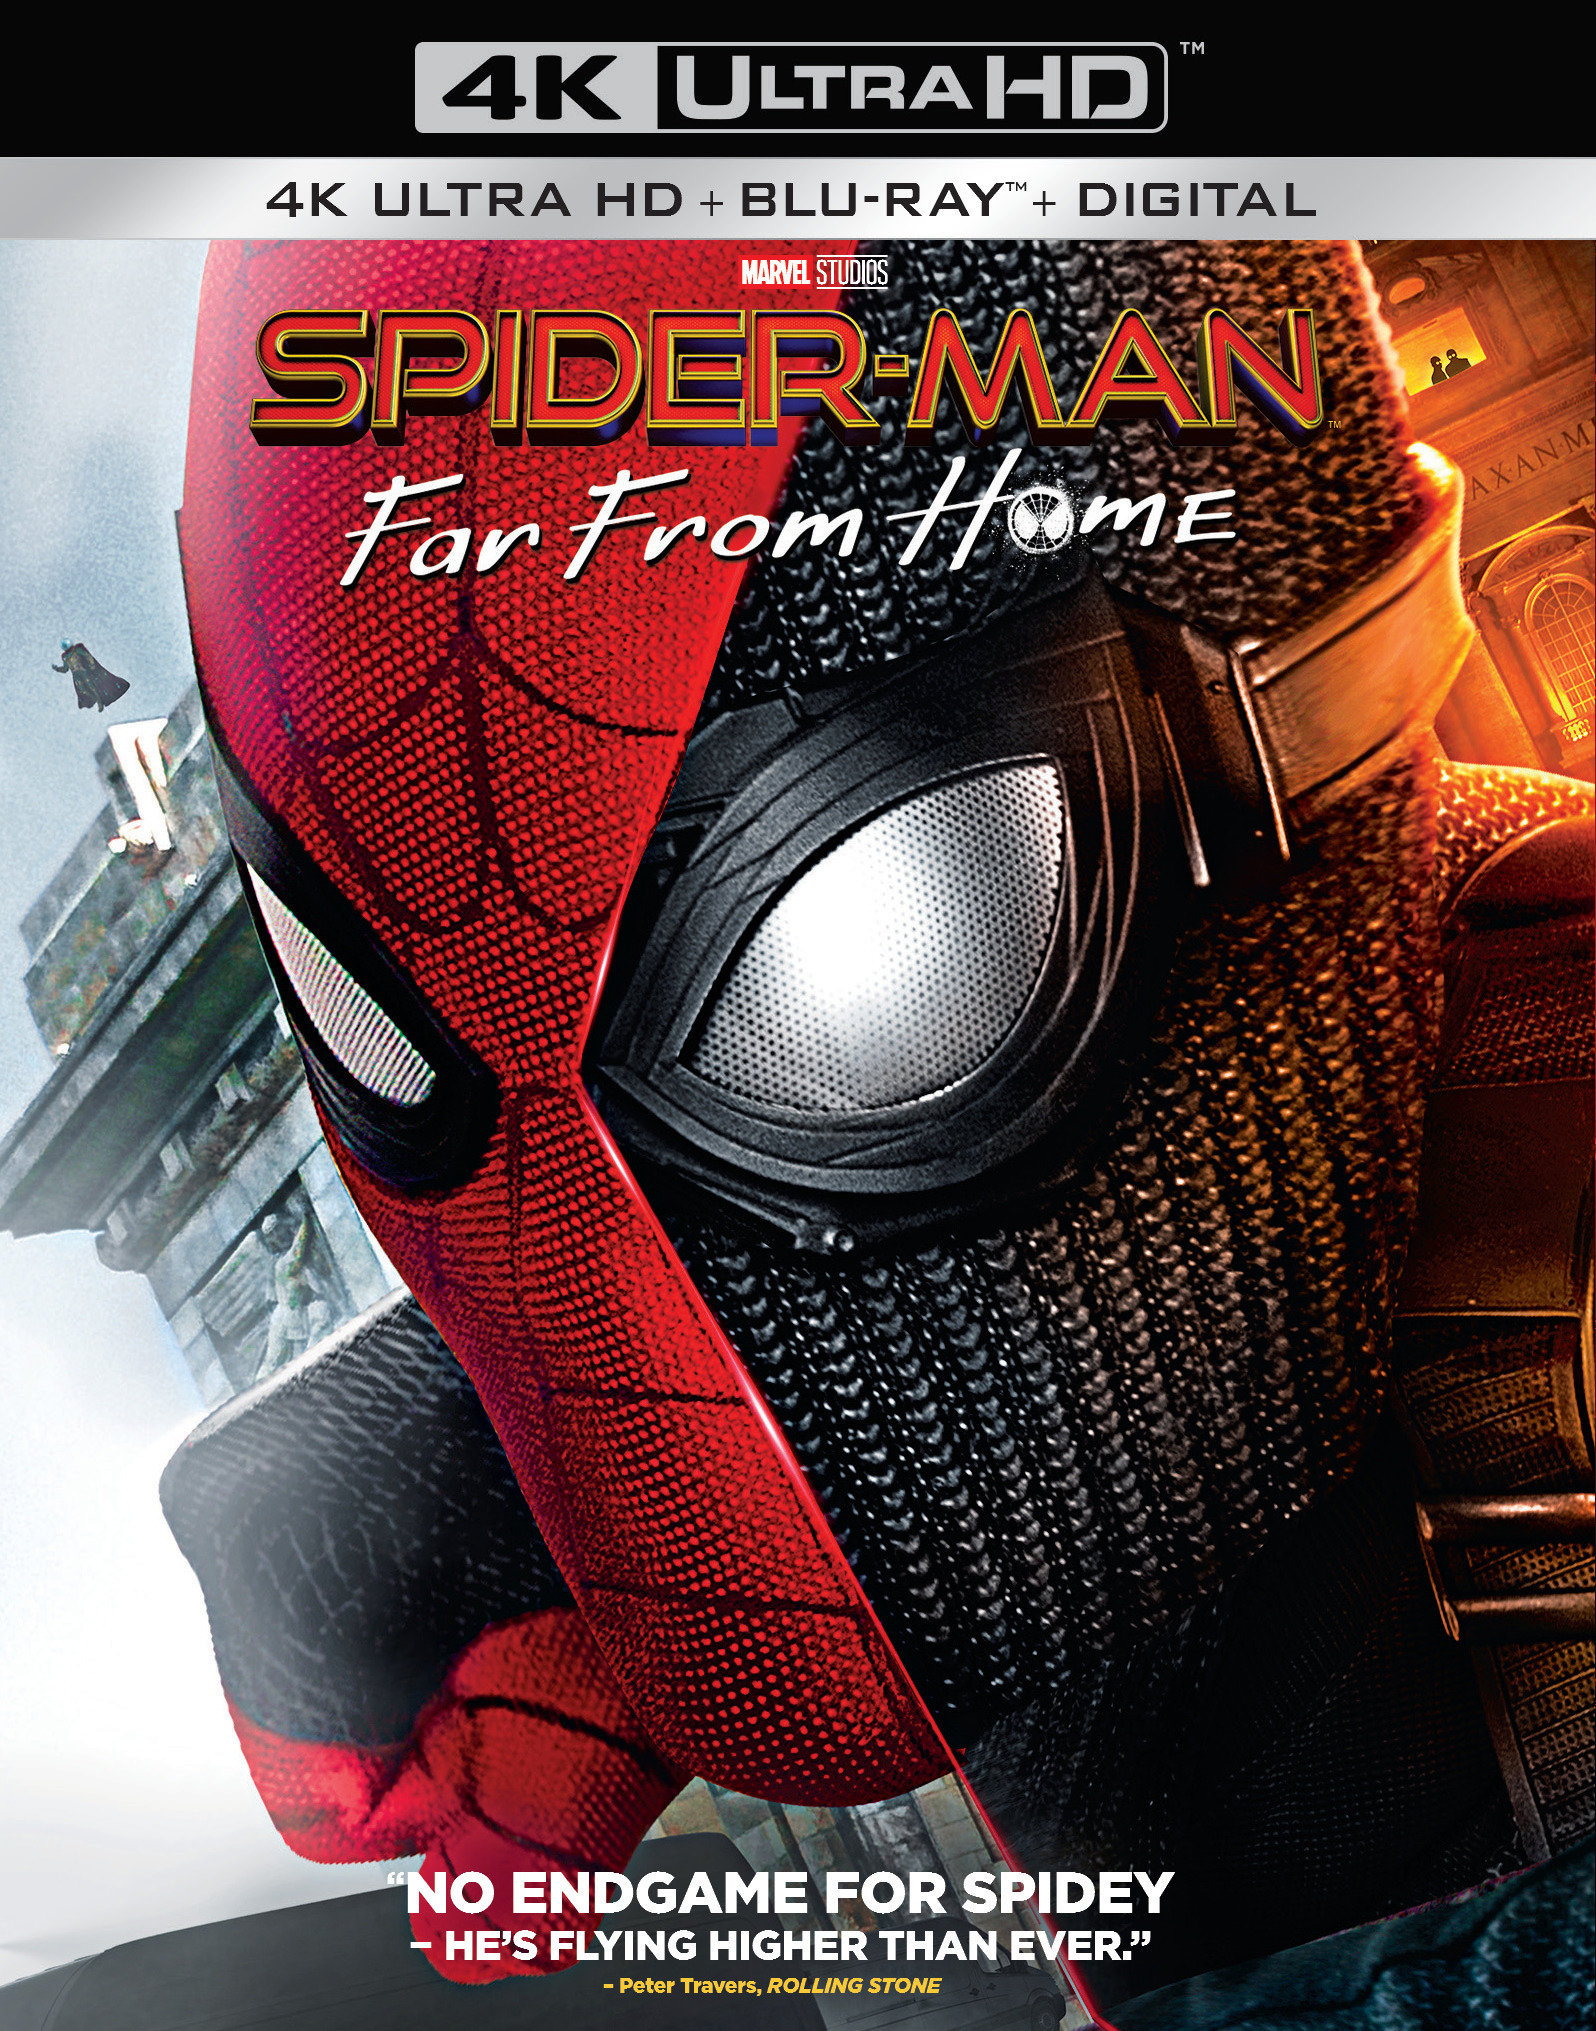 Spider-Man: Far from Home (2019) poster image